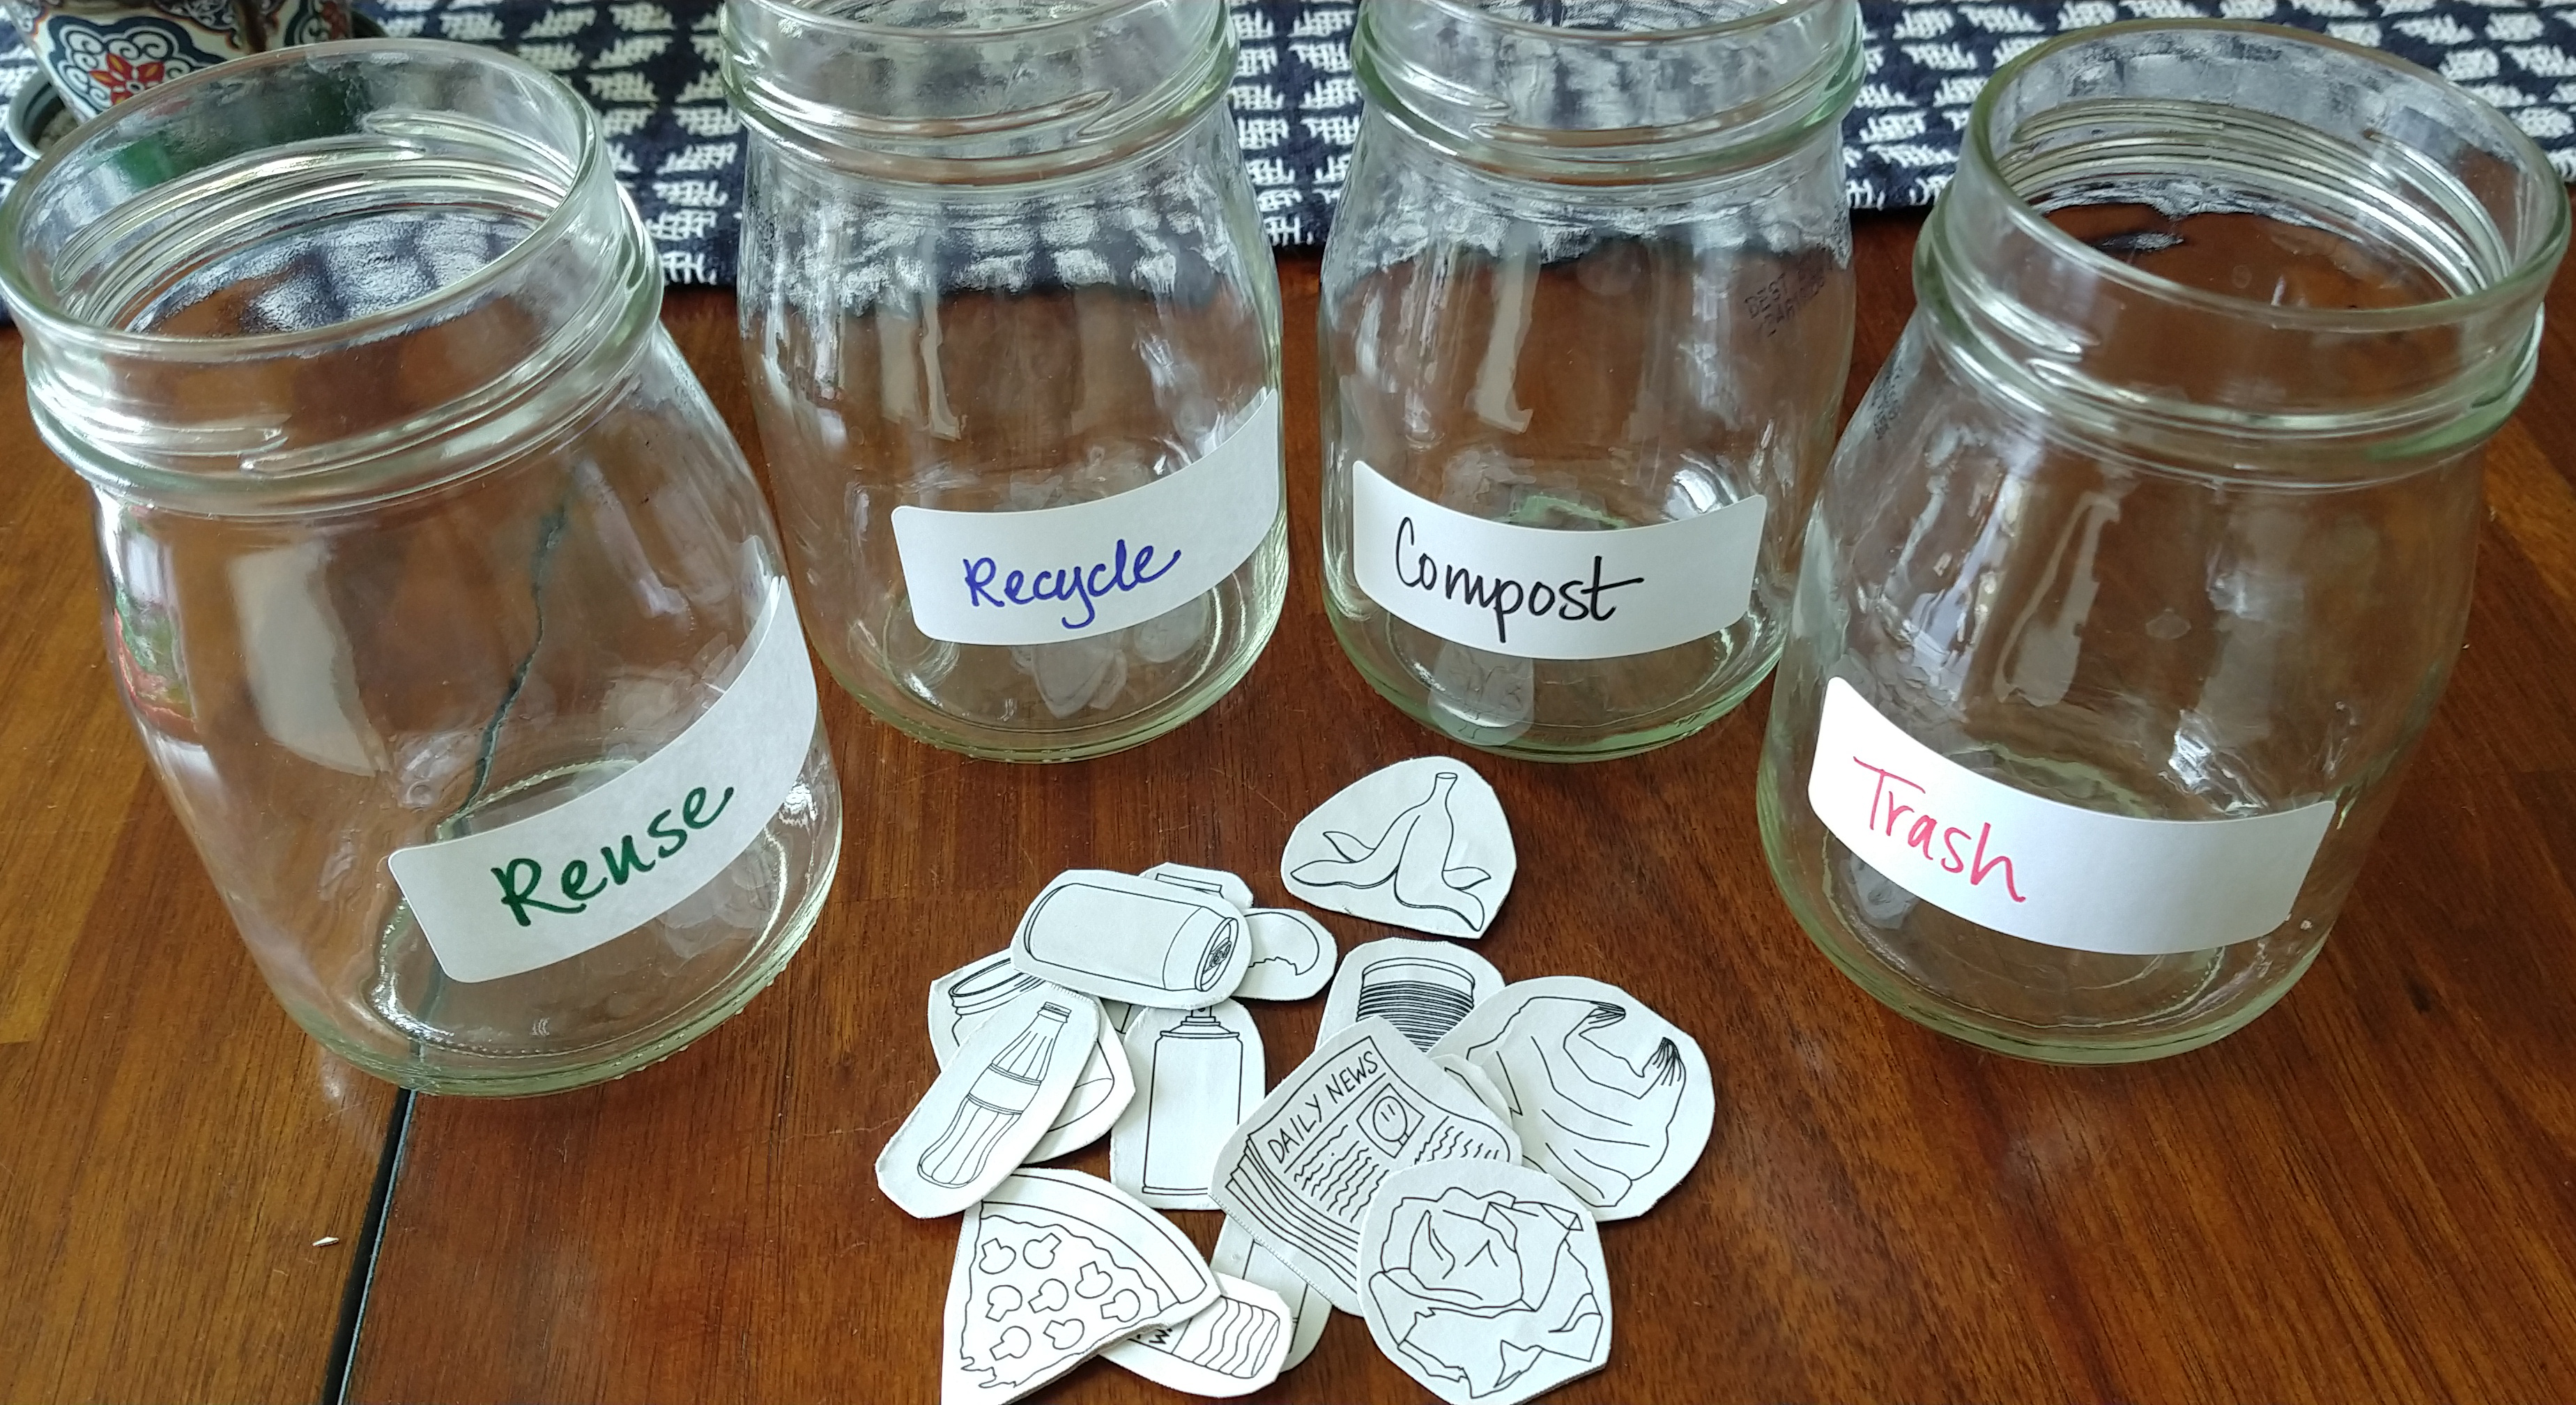 Learn recycling with this simple craft using jars